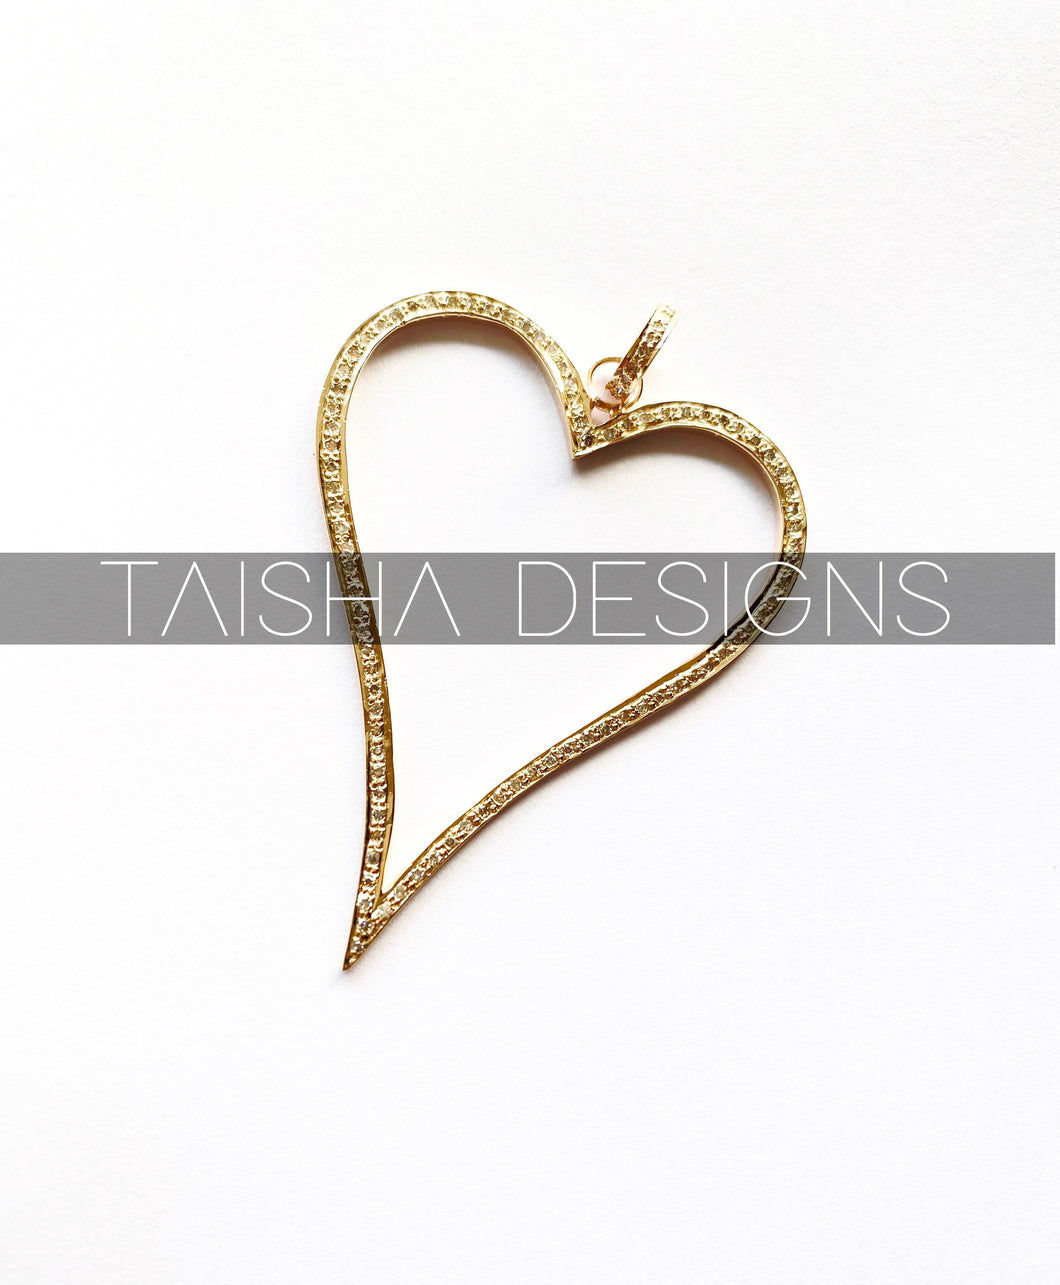 Gold Pave Diamond Heart Pendent - 14KT Yellow Gold Diamond Heart